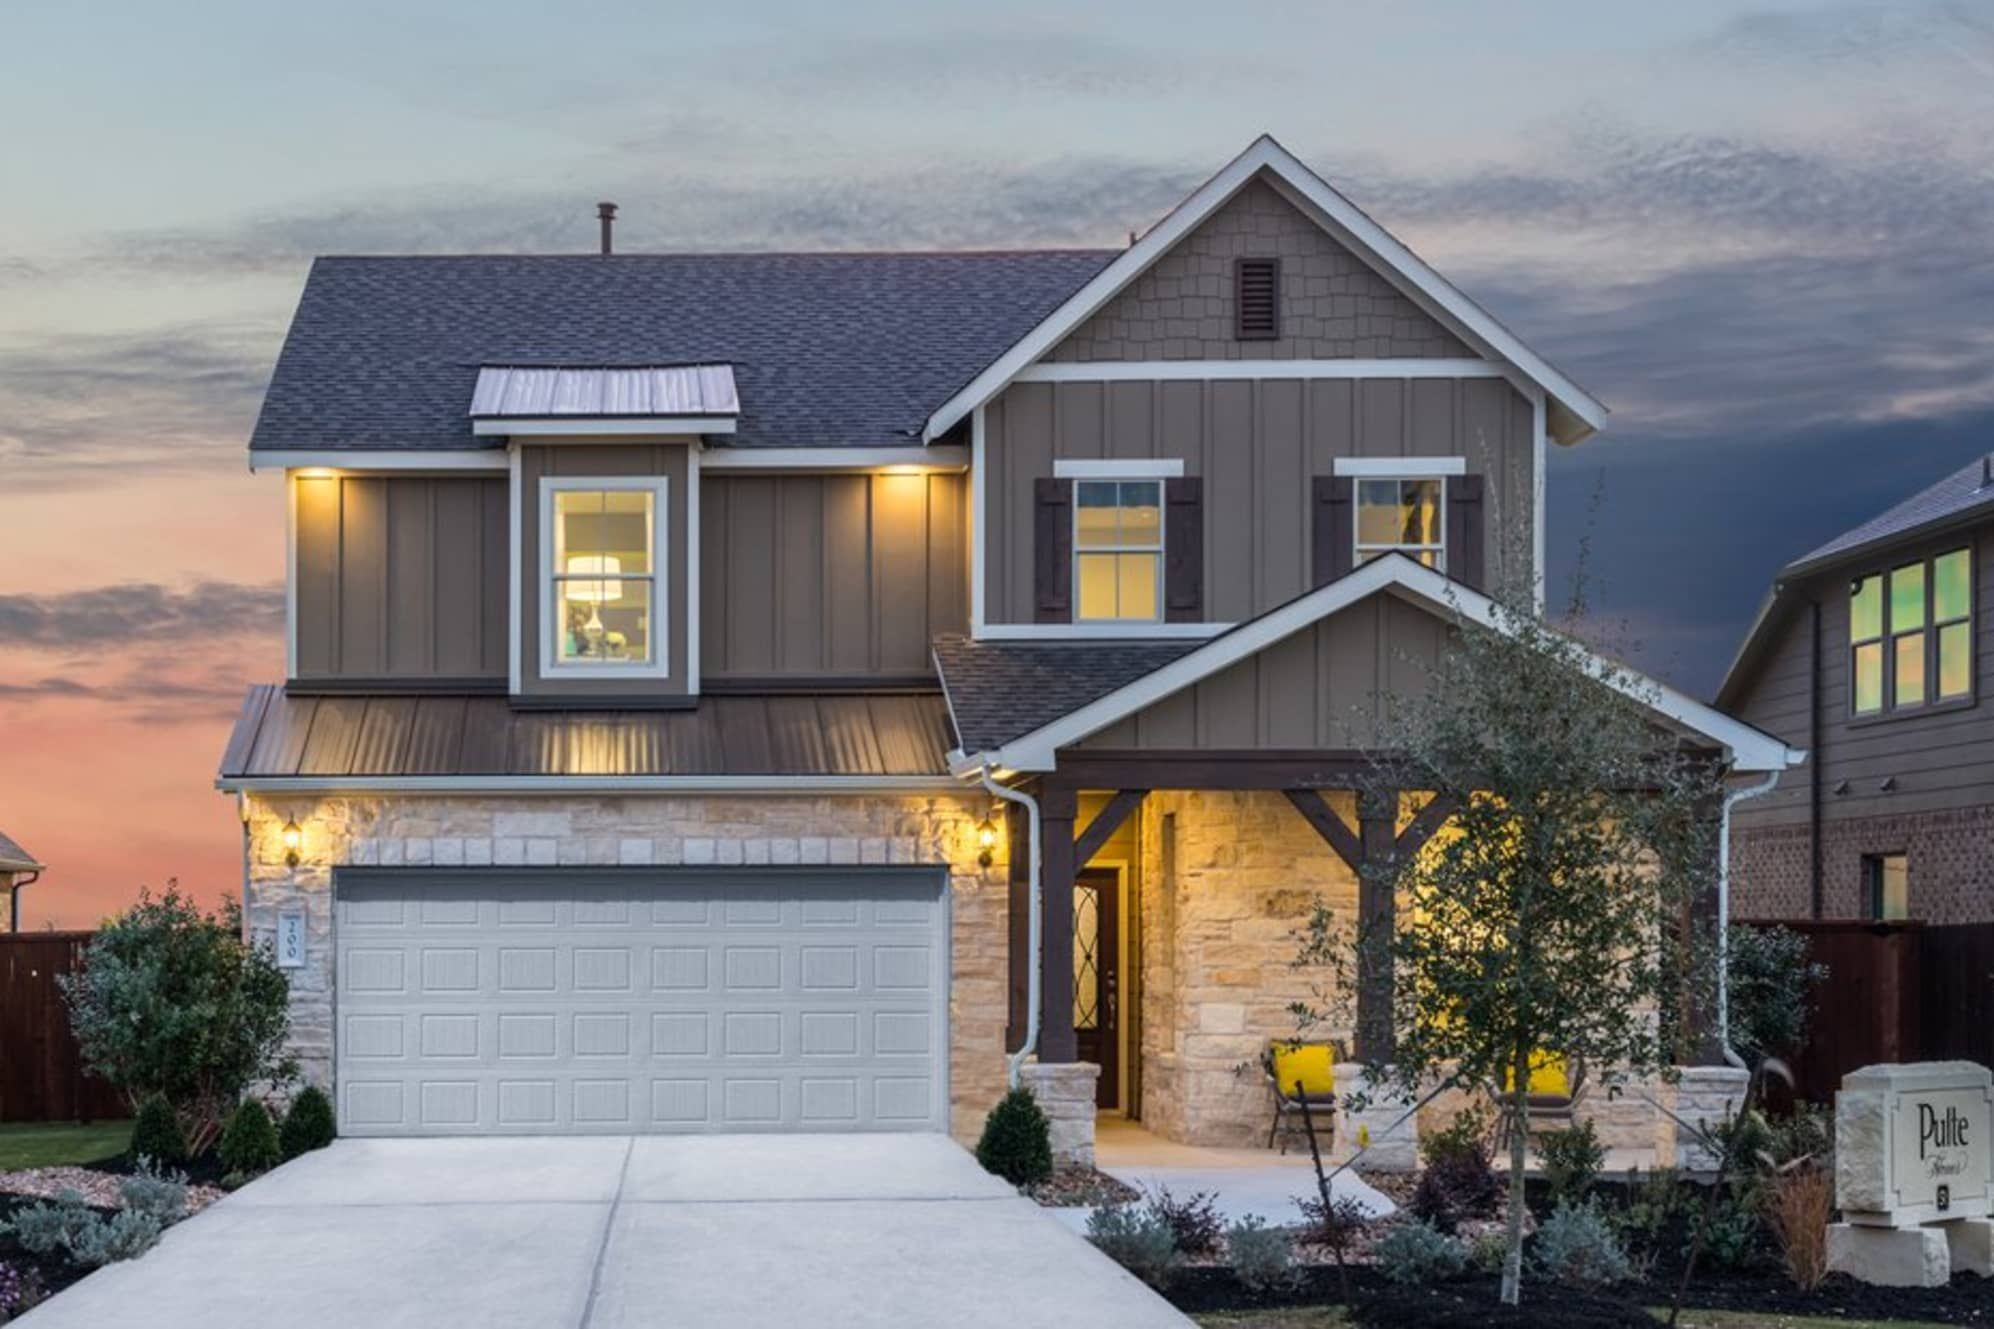 Santa Rita Ranch By Pulte Homes Country Home Exteriors Pulte Homes New Home Construction